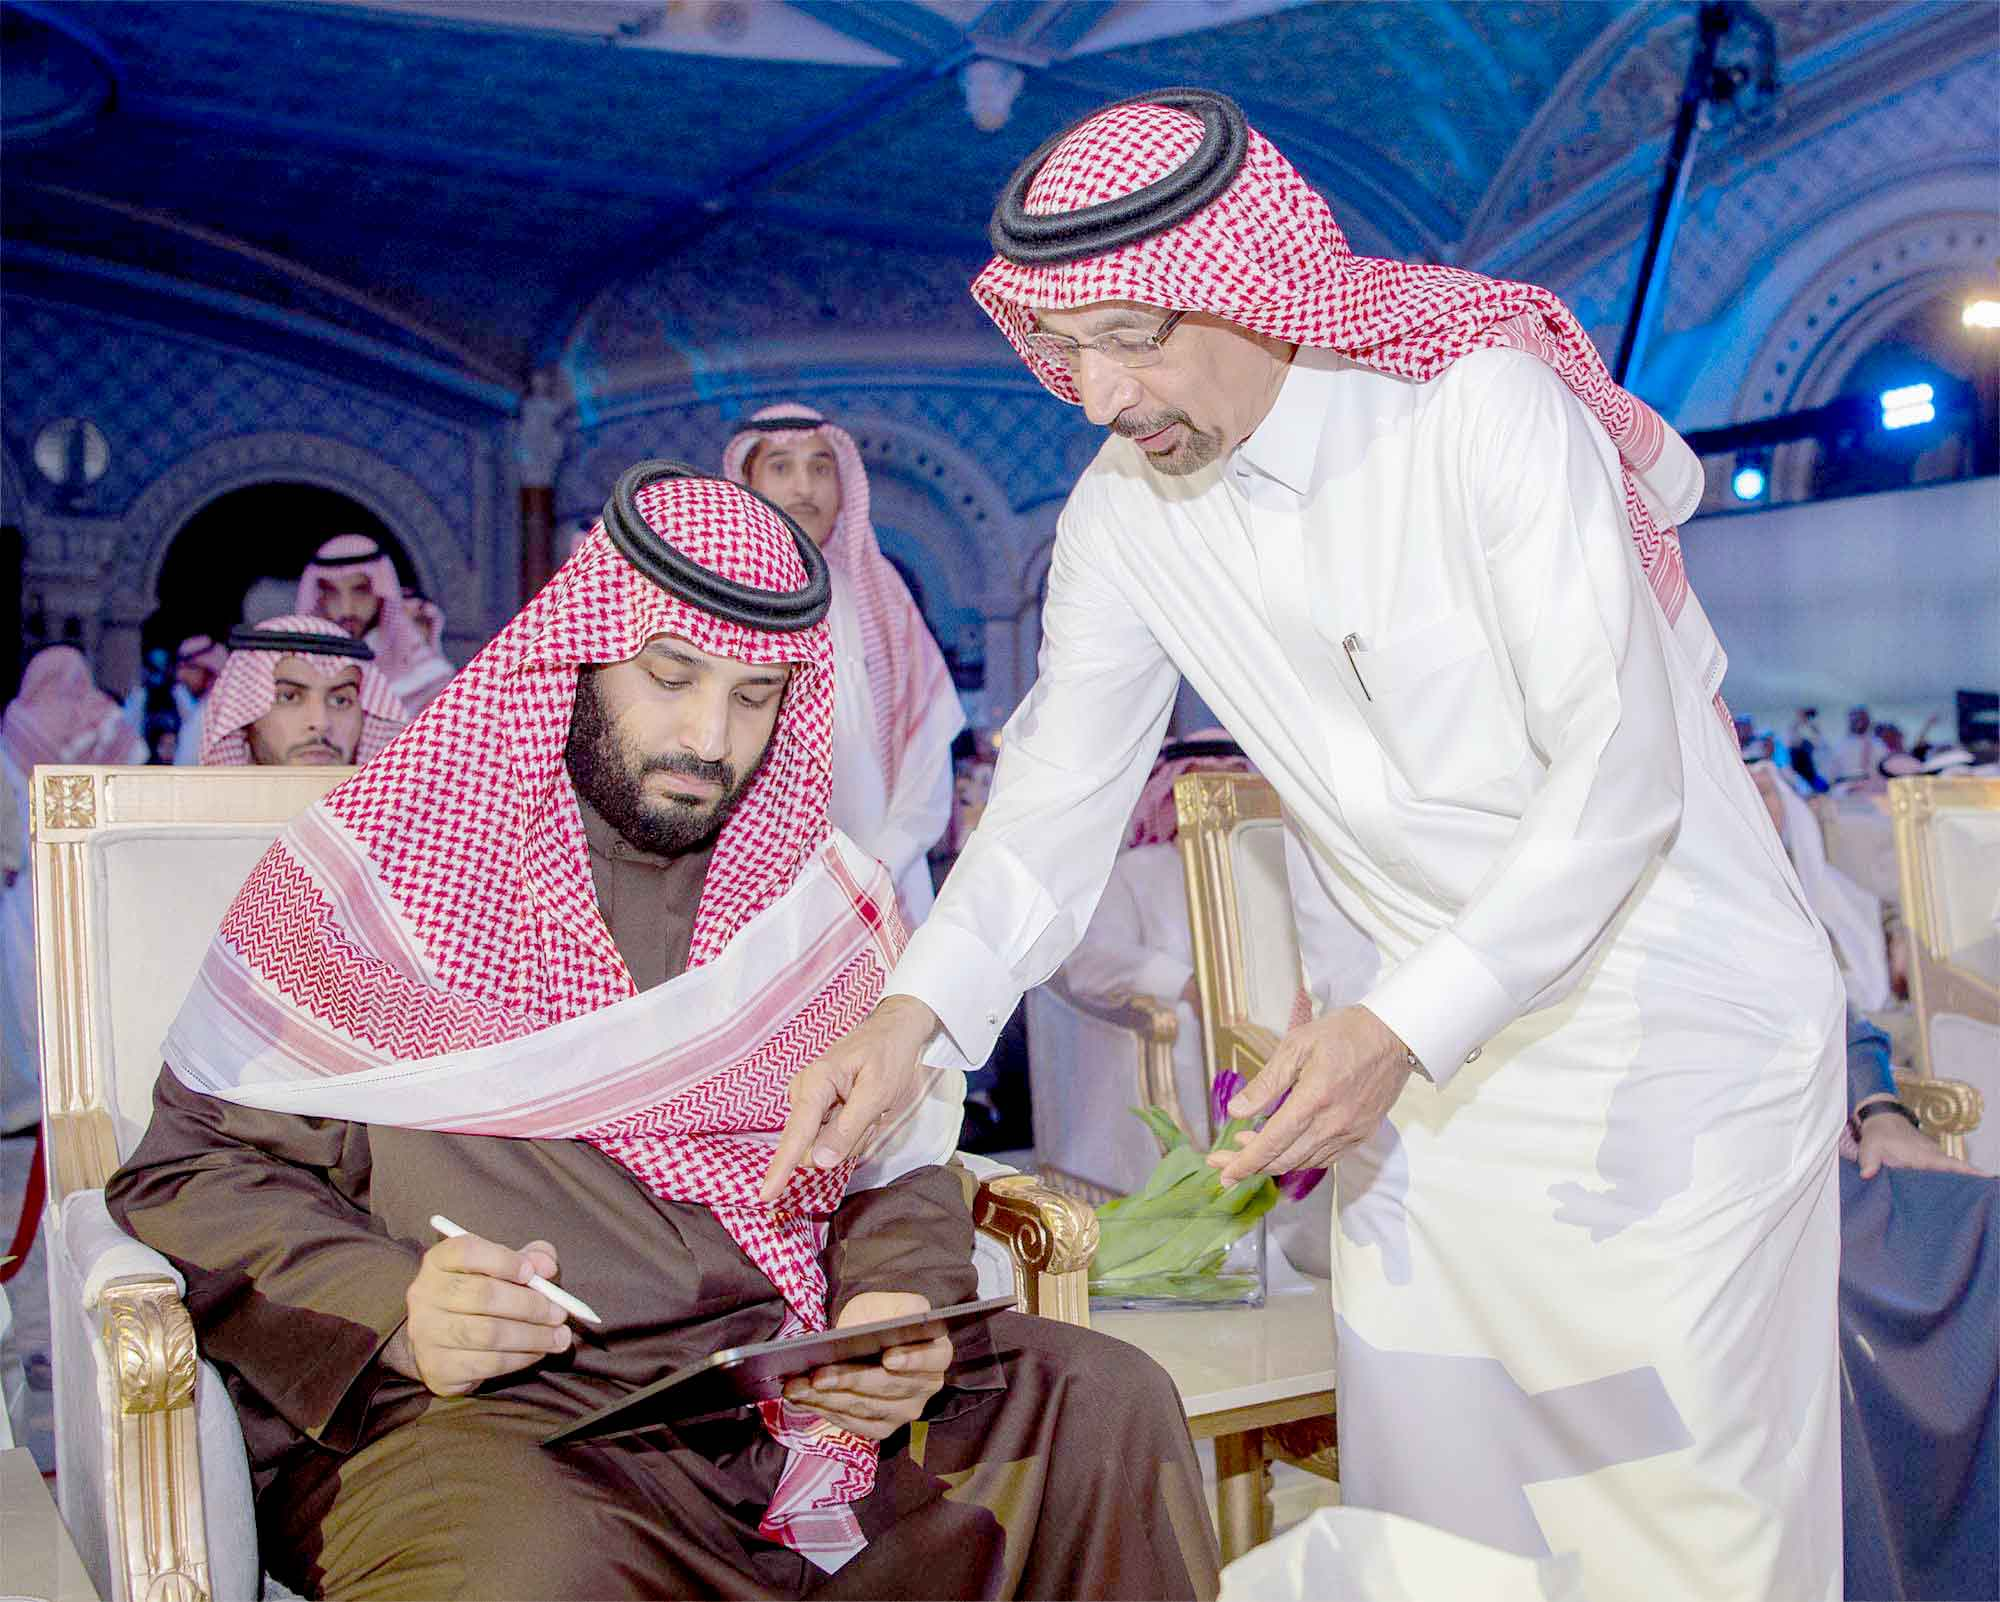 Crown Prince Mohammed bin Salman bin Abdulaziz (L) signs a document given to him by Energy Minister Khalid al-Falih during a ceremony in Riyadh, January 28. (SPA)